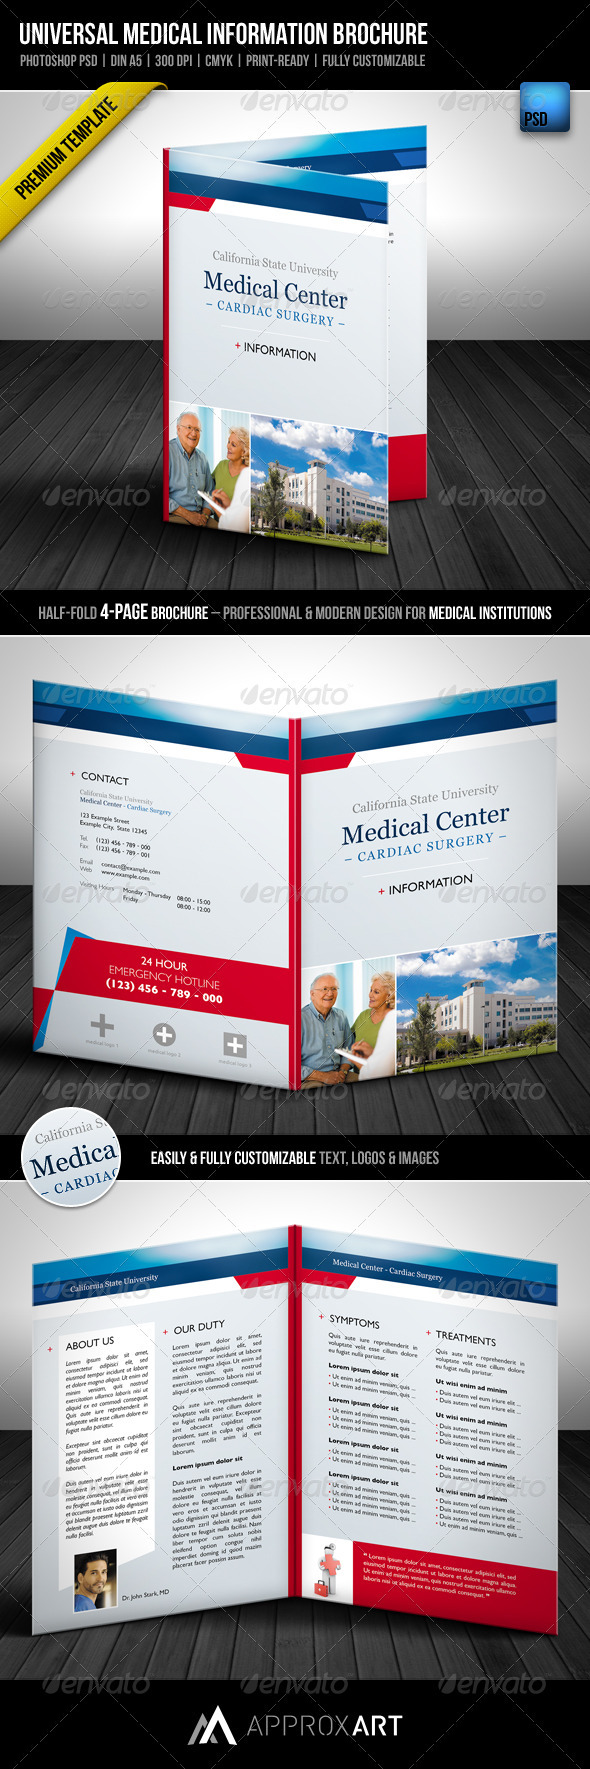 GraphicRiver Universal Medical Information Brochure 2072062